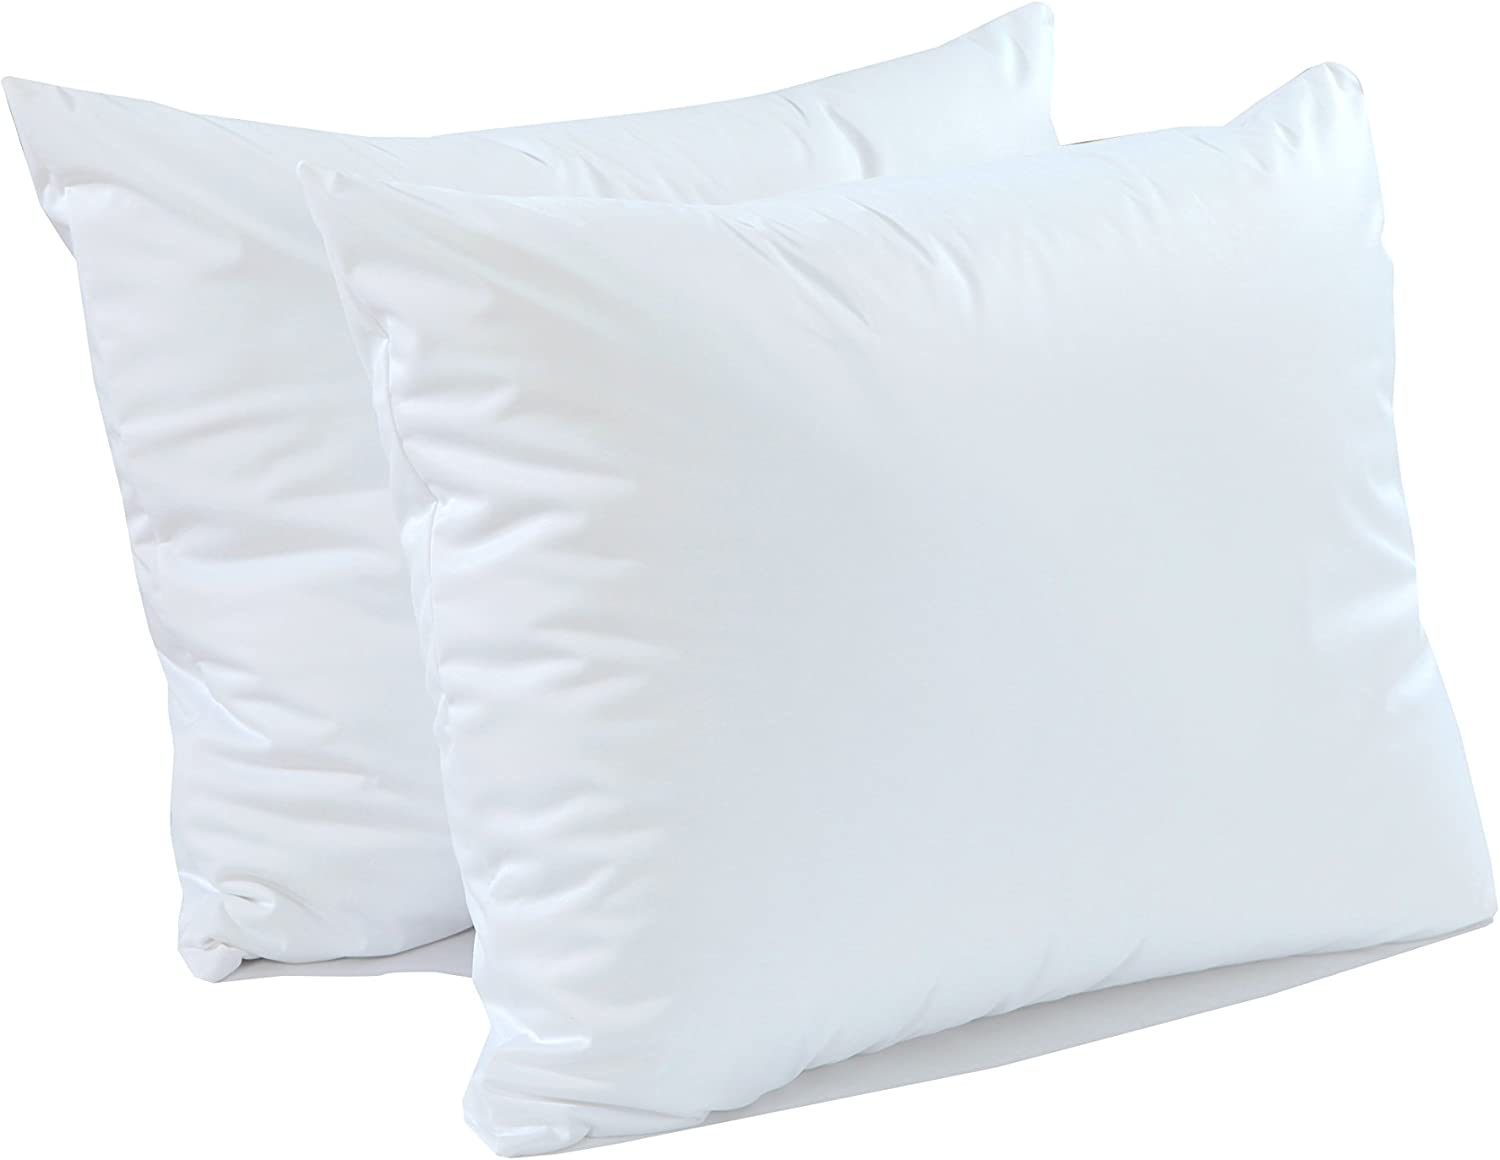 CALM NITE Pillow Protector 2 Pack - Extra Soft Knit - Waterproof Zippered Hypoallergenic Case, Blocks Bed Bugs and Dust Mites (Queen 2 Pack)